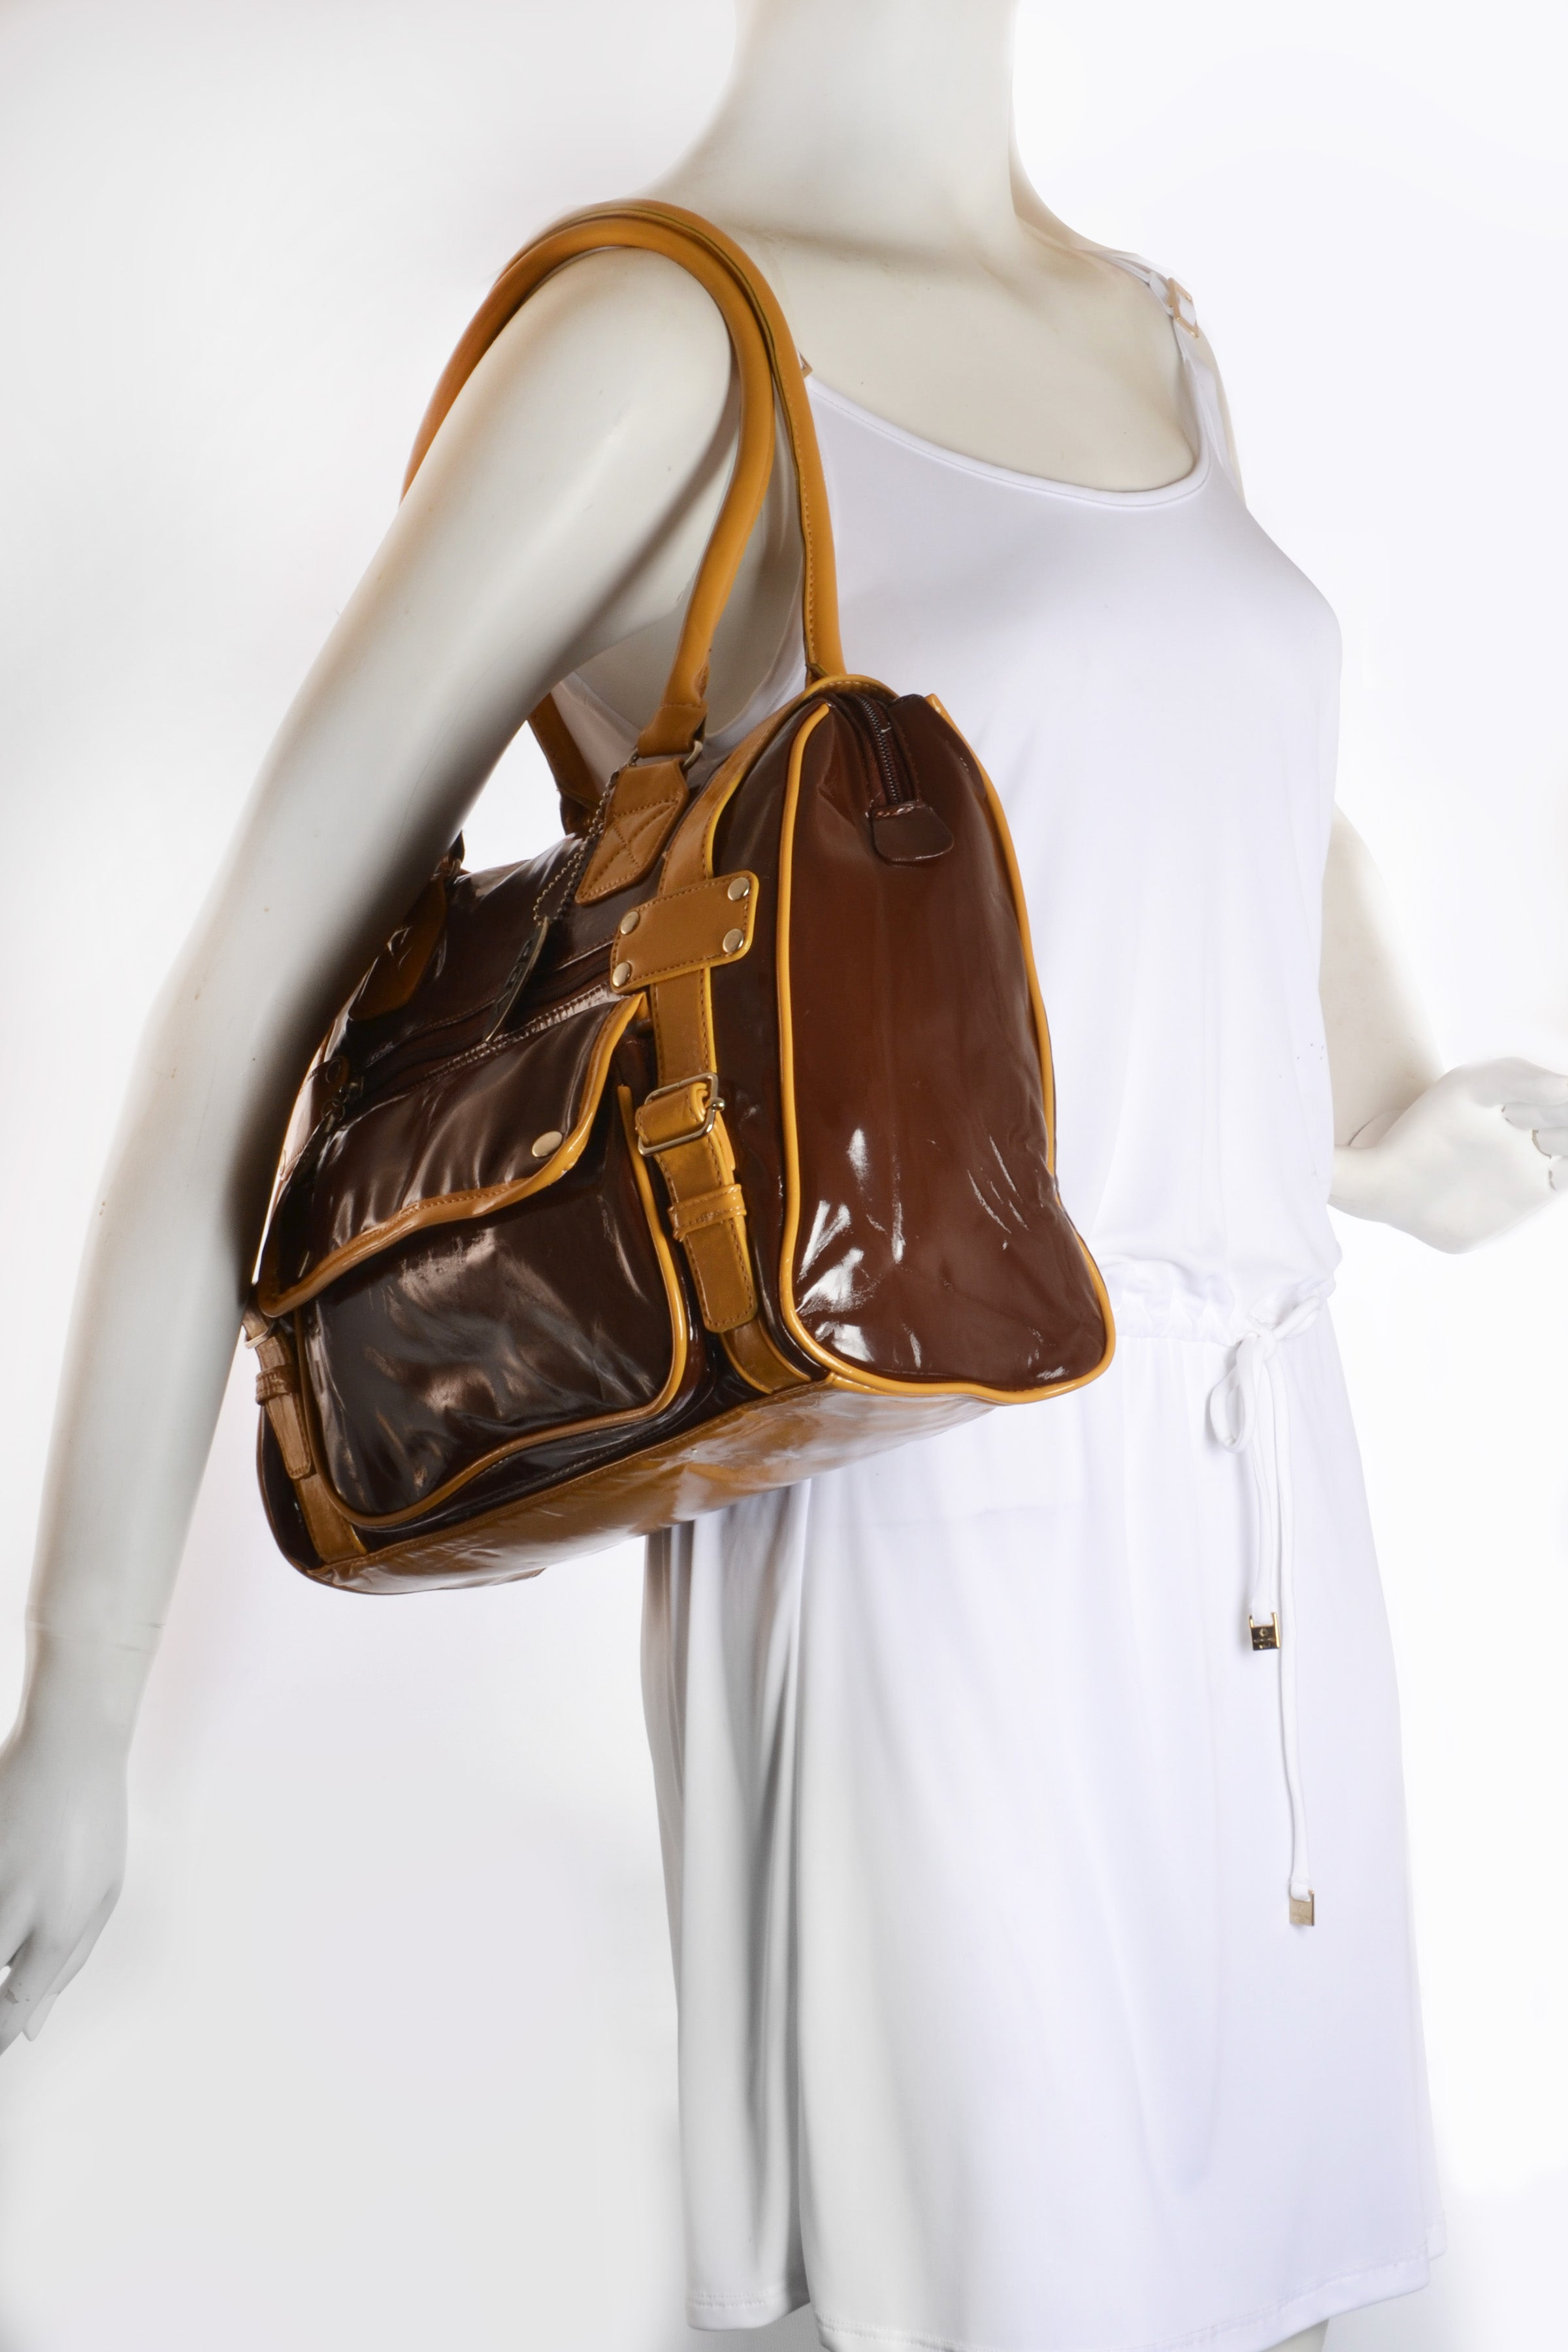 MEDIUM SIZE SATCHEL IN BROWN AND GOLD